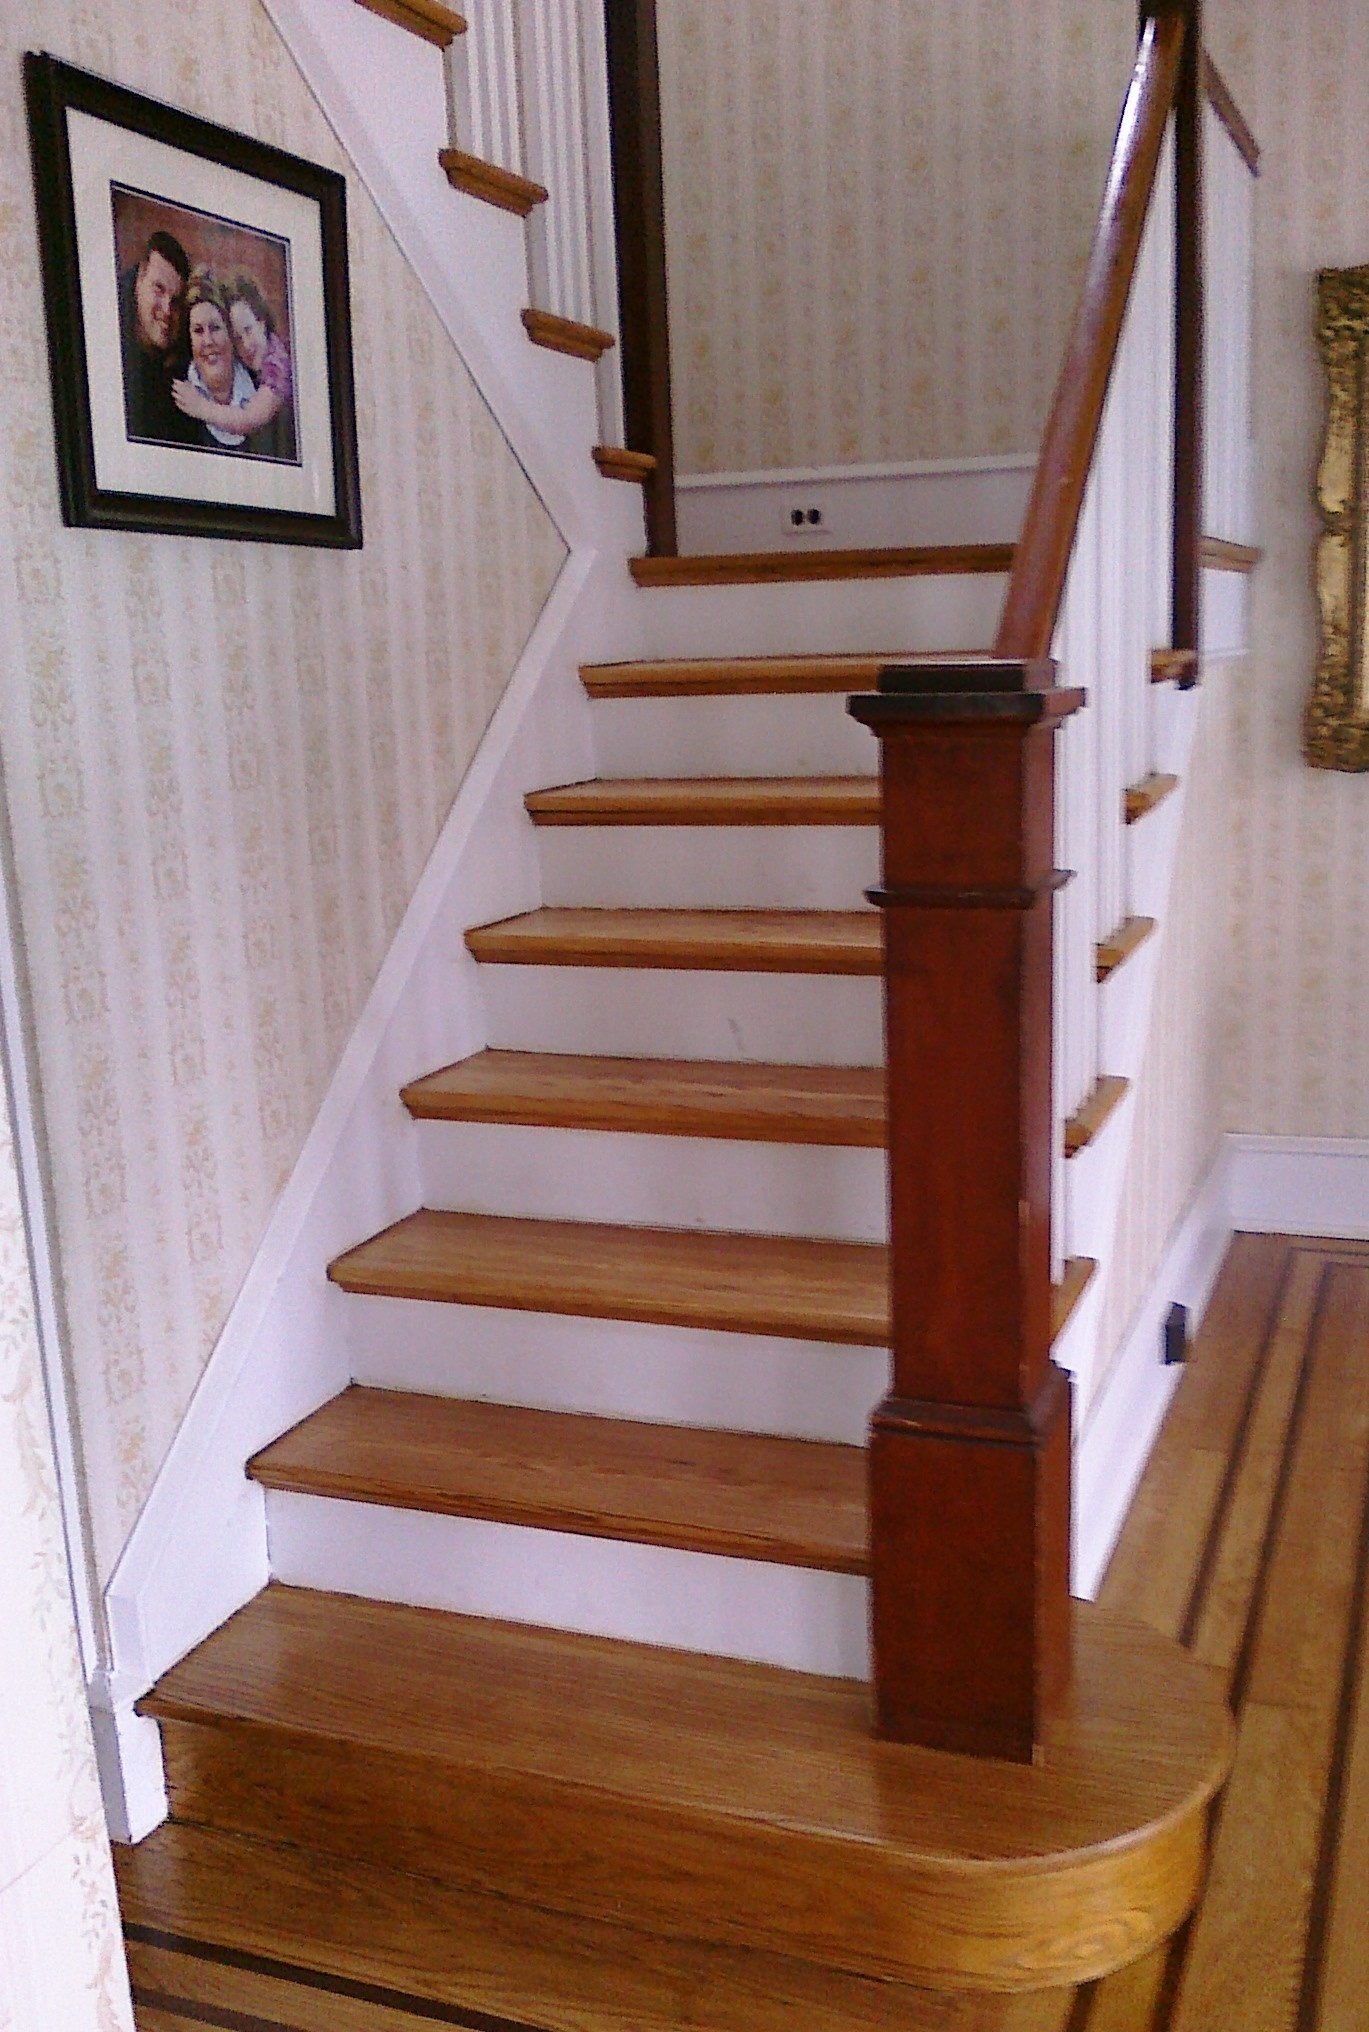 Wooden Staircase Pictures Top 15 Stair Treads For Wooden Stairs Stair Tread Rugs Ideas